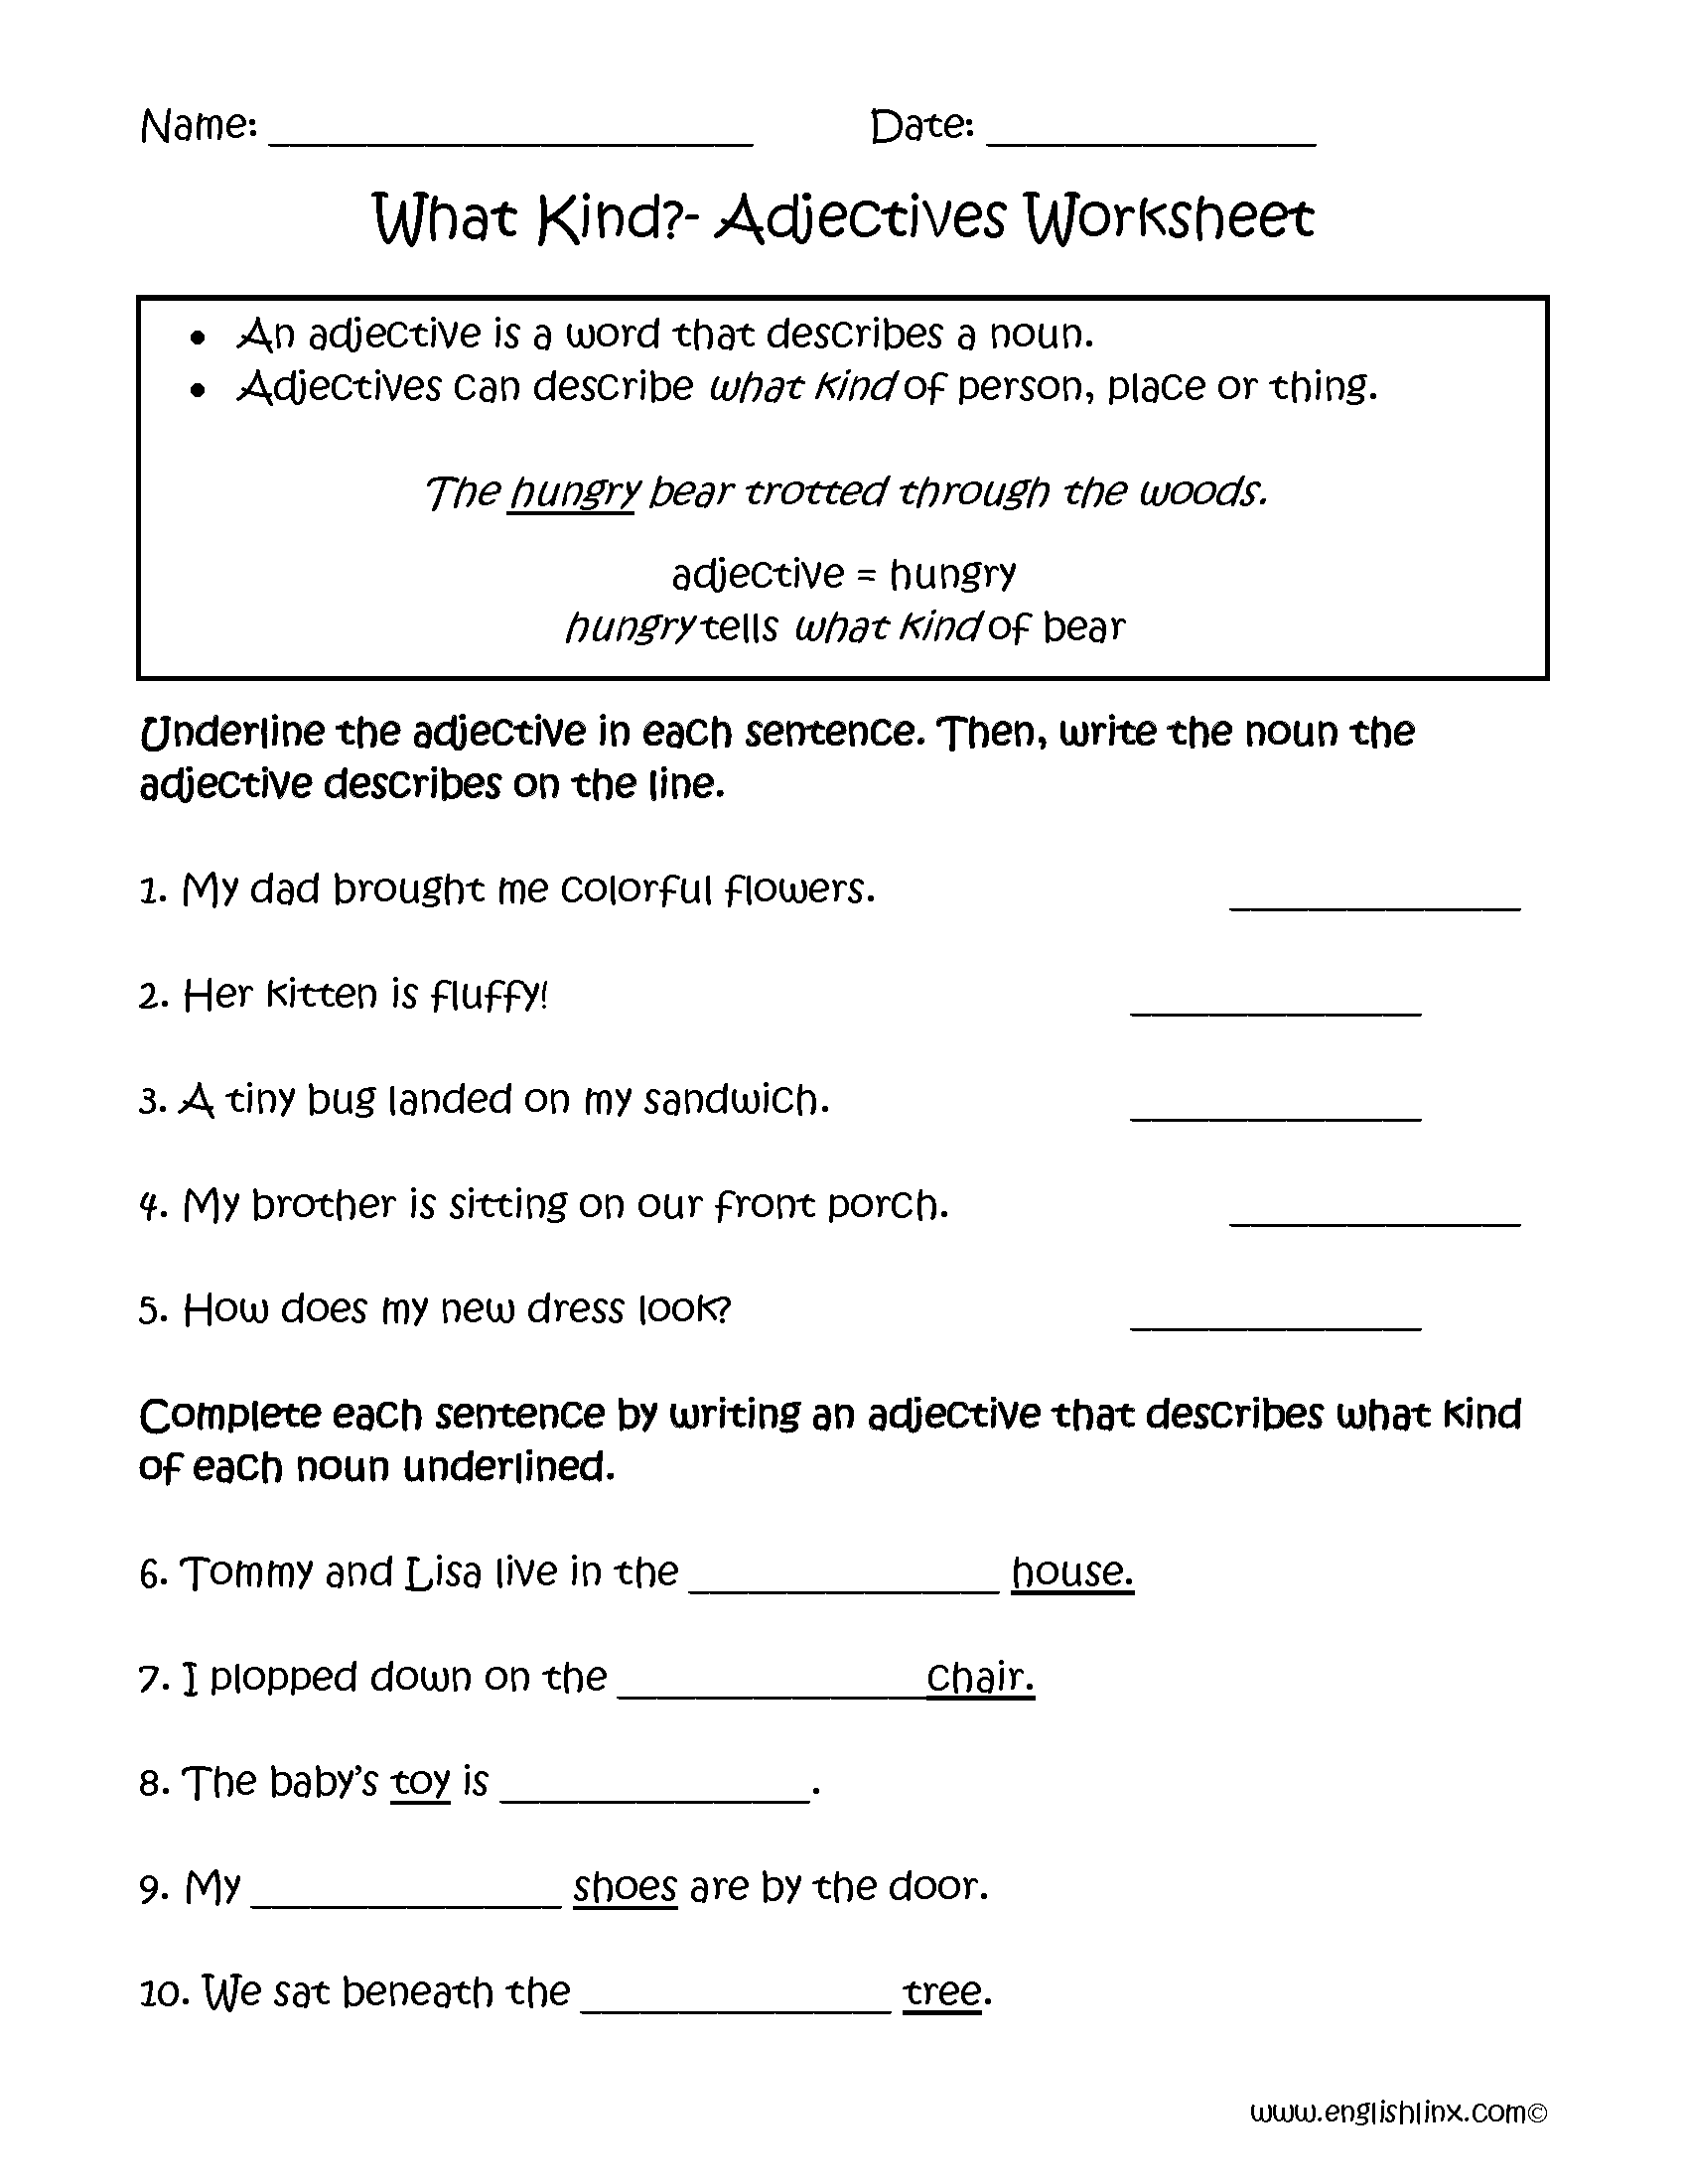 What Kind Adjectives Worksheets | Adjective worksheet ...